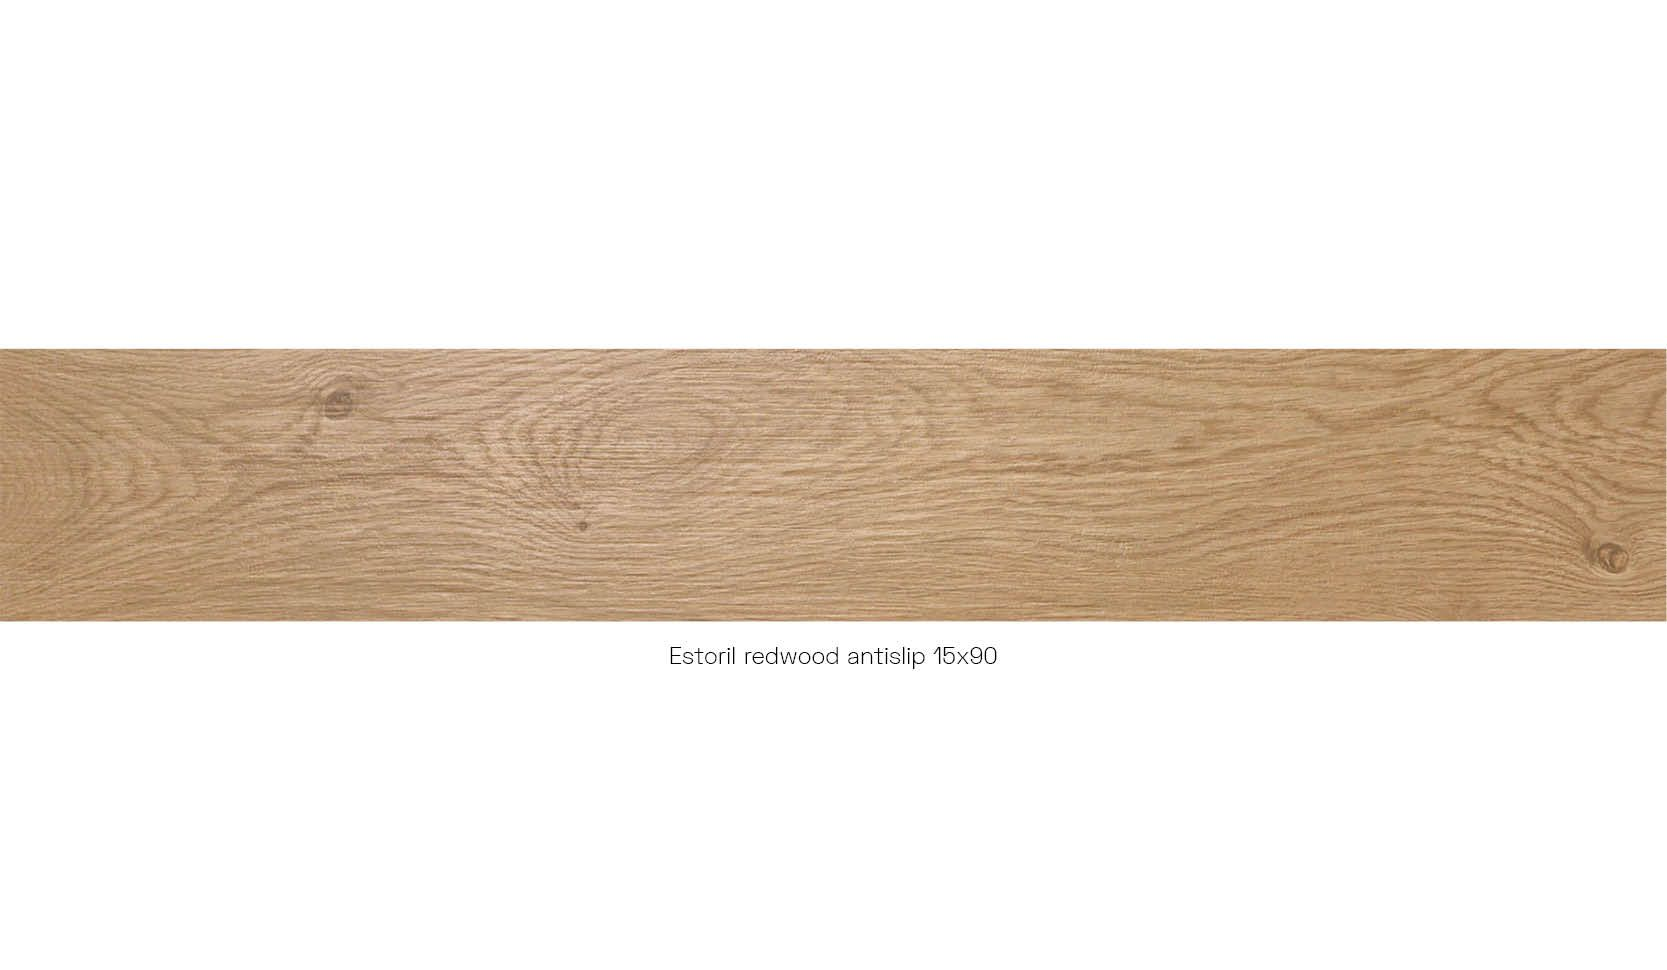 Estoril redwood antislip15 x 90